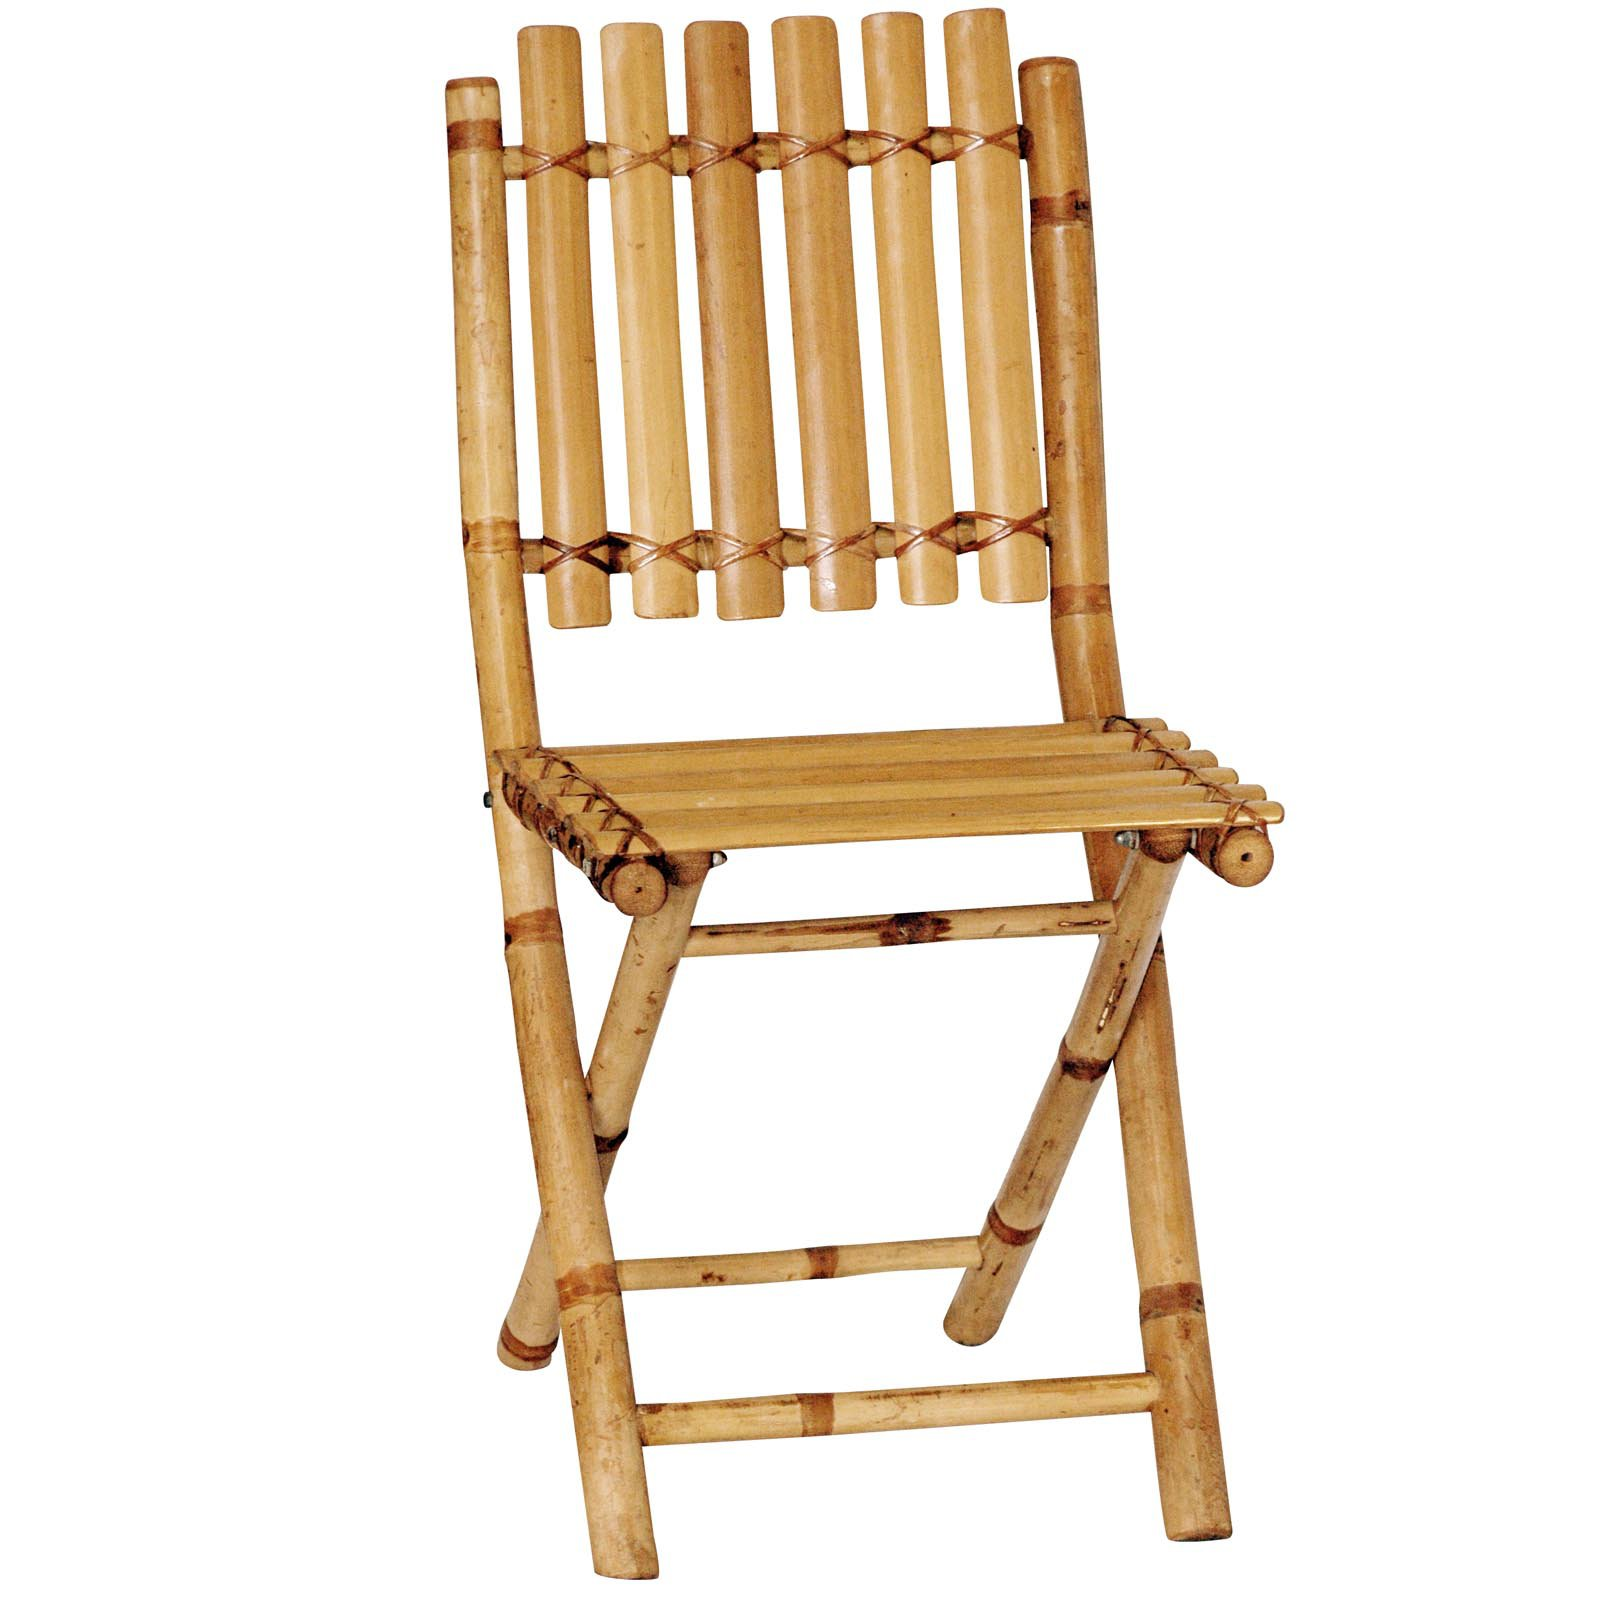 Bamboo Chairs Bamboo54 Folding Bamboo Chairs Set Of 2